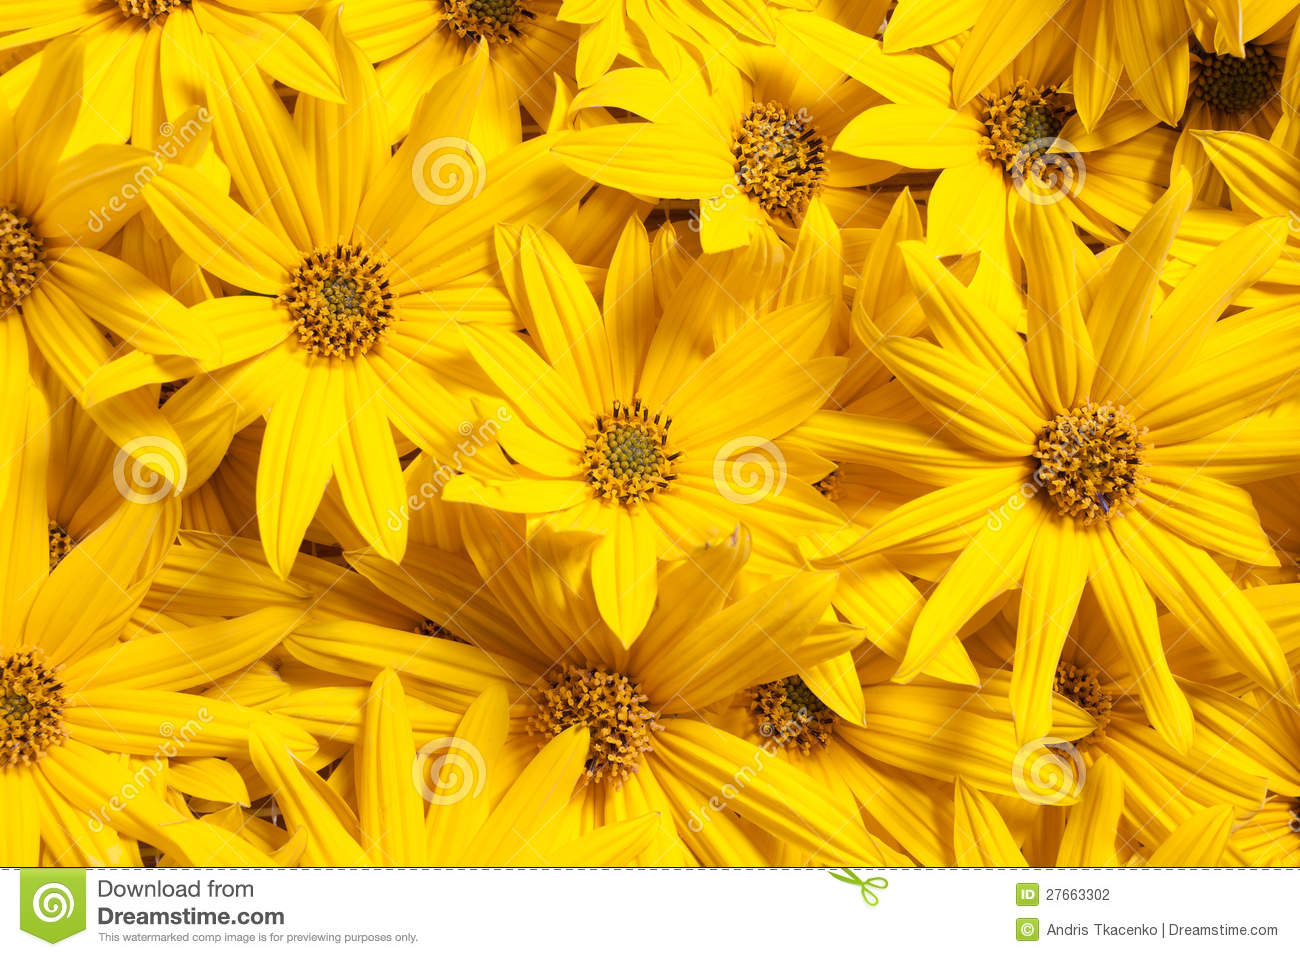 Topinambour flowers background